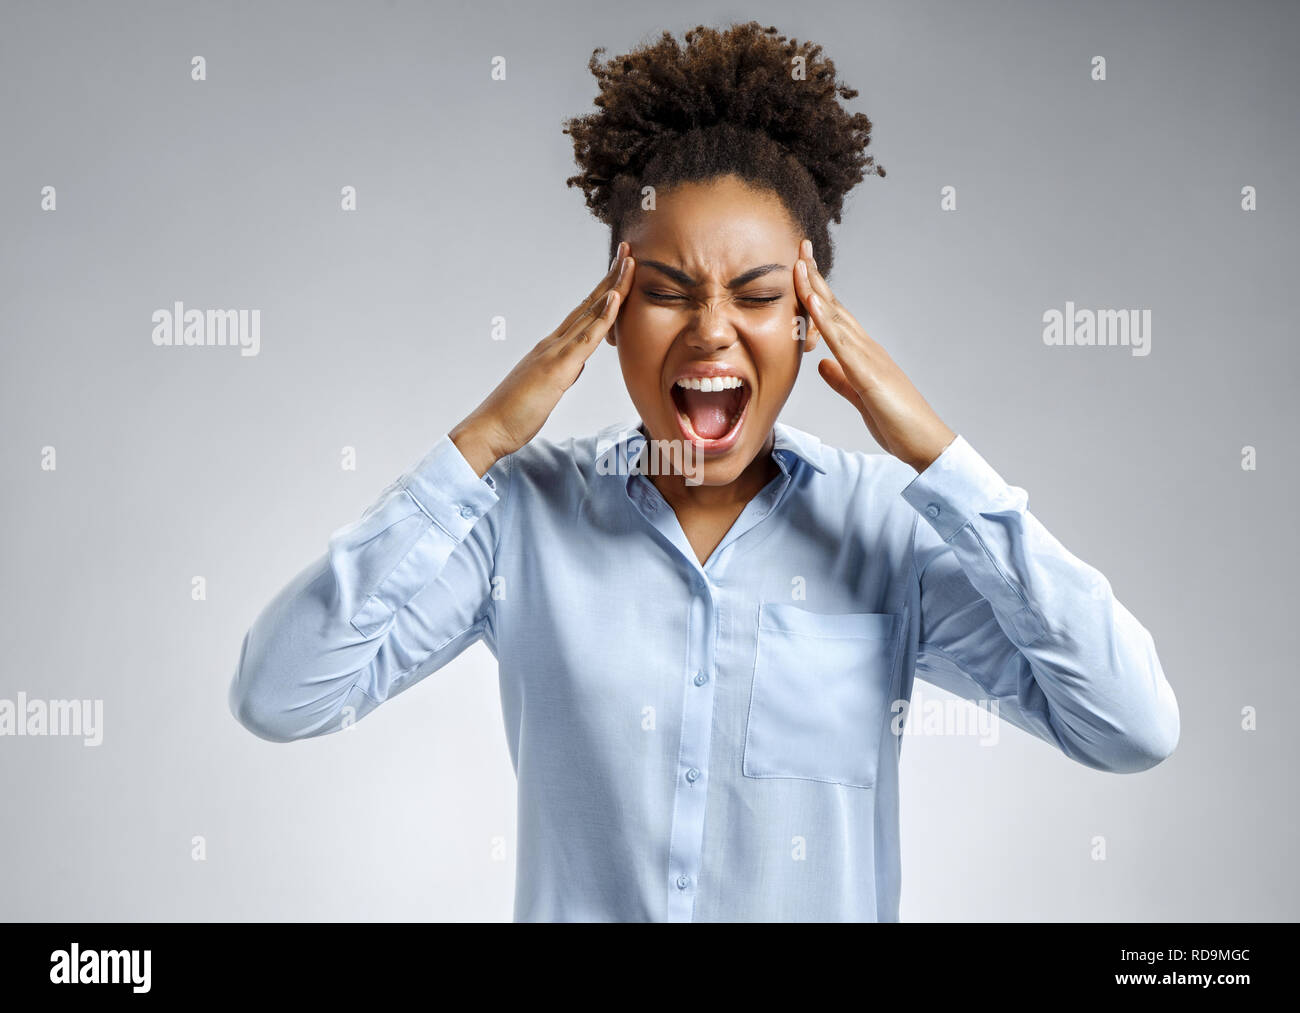 Woman suffering from stress or a headache grimacing in pain. Photo of african american woman in blue shirt on gray background. Medical concept. - Stock Image